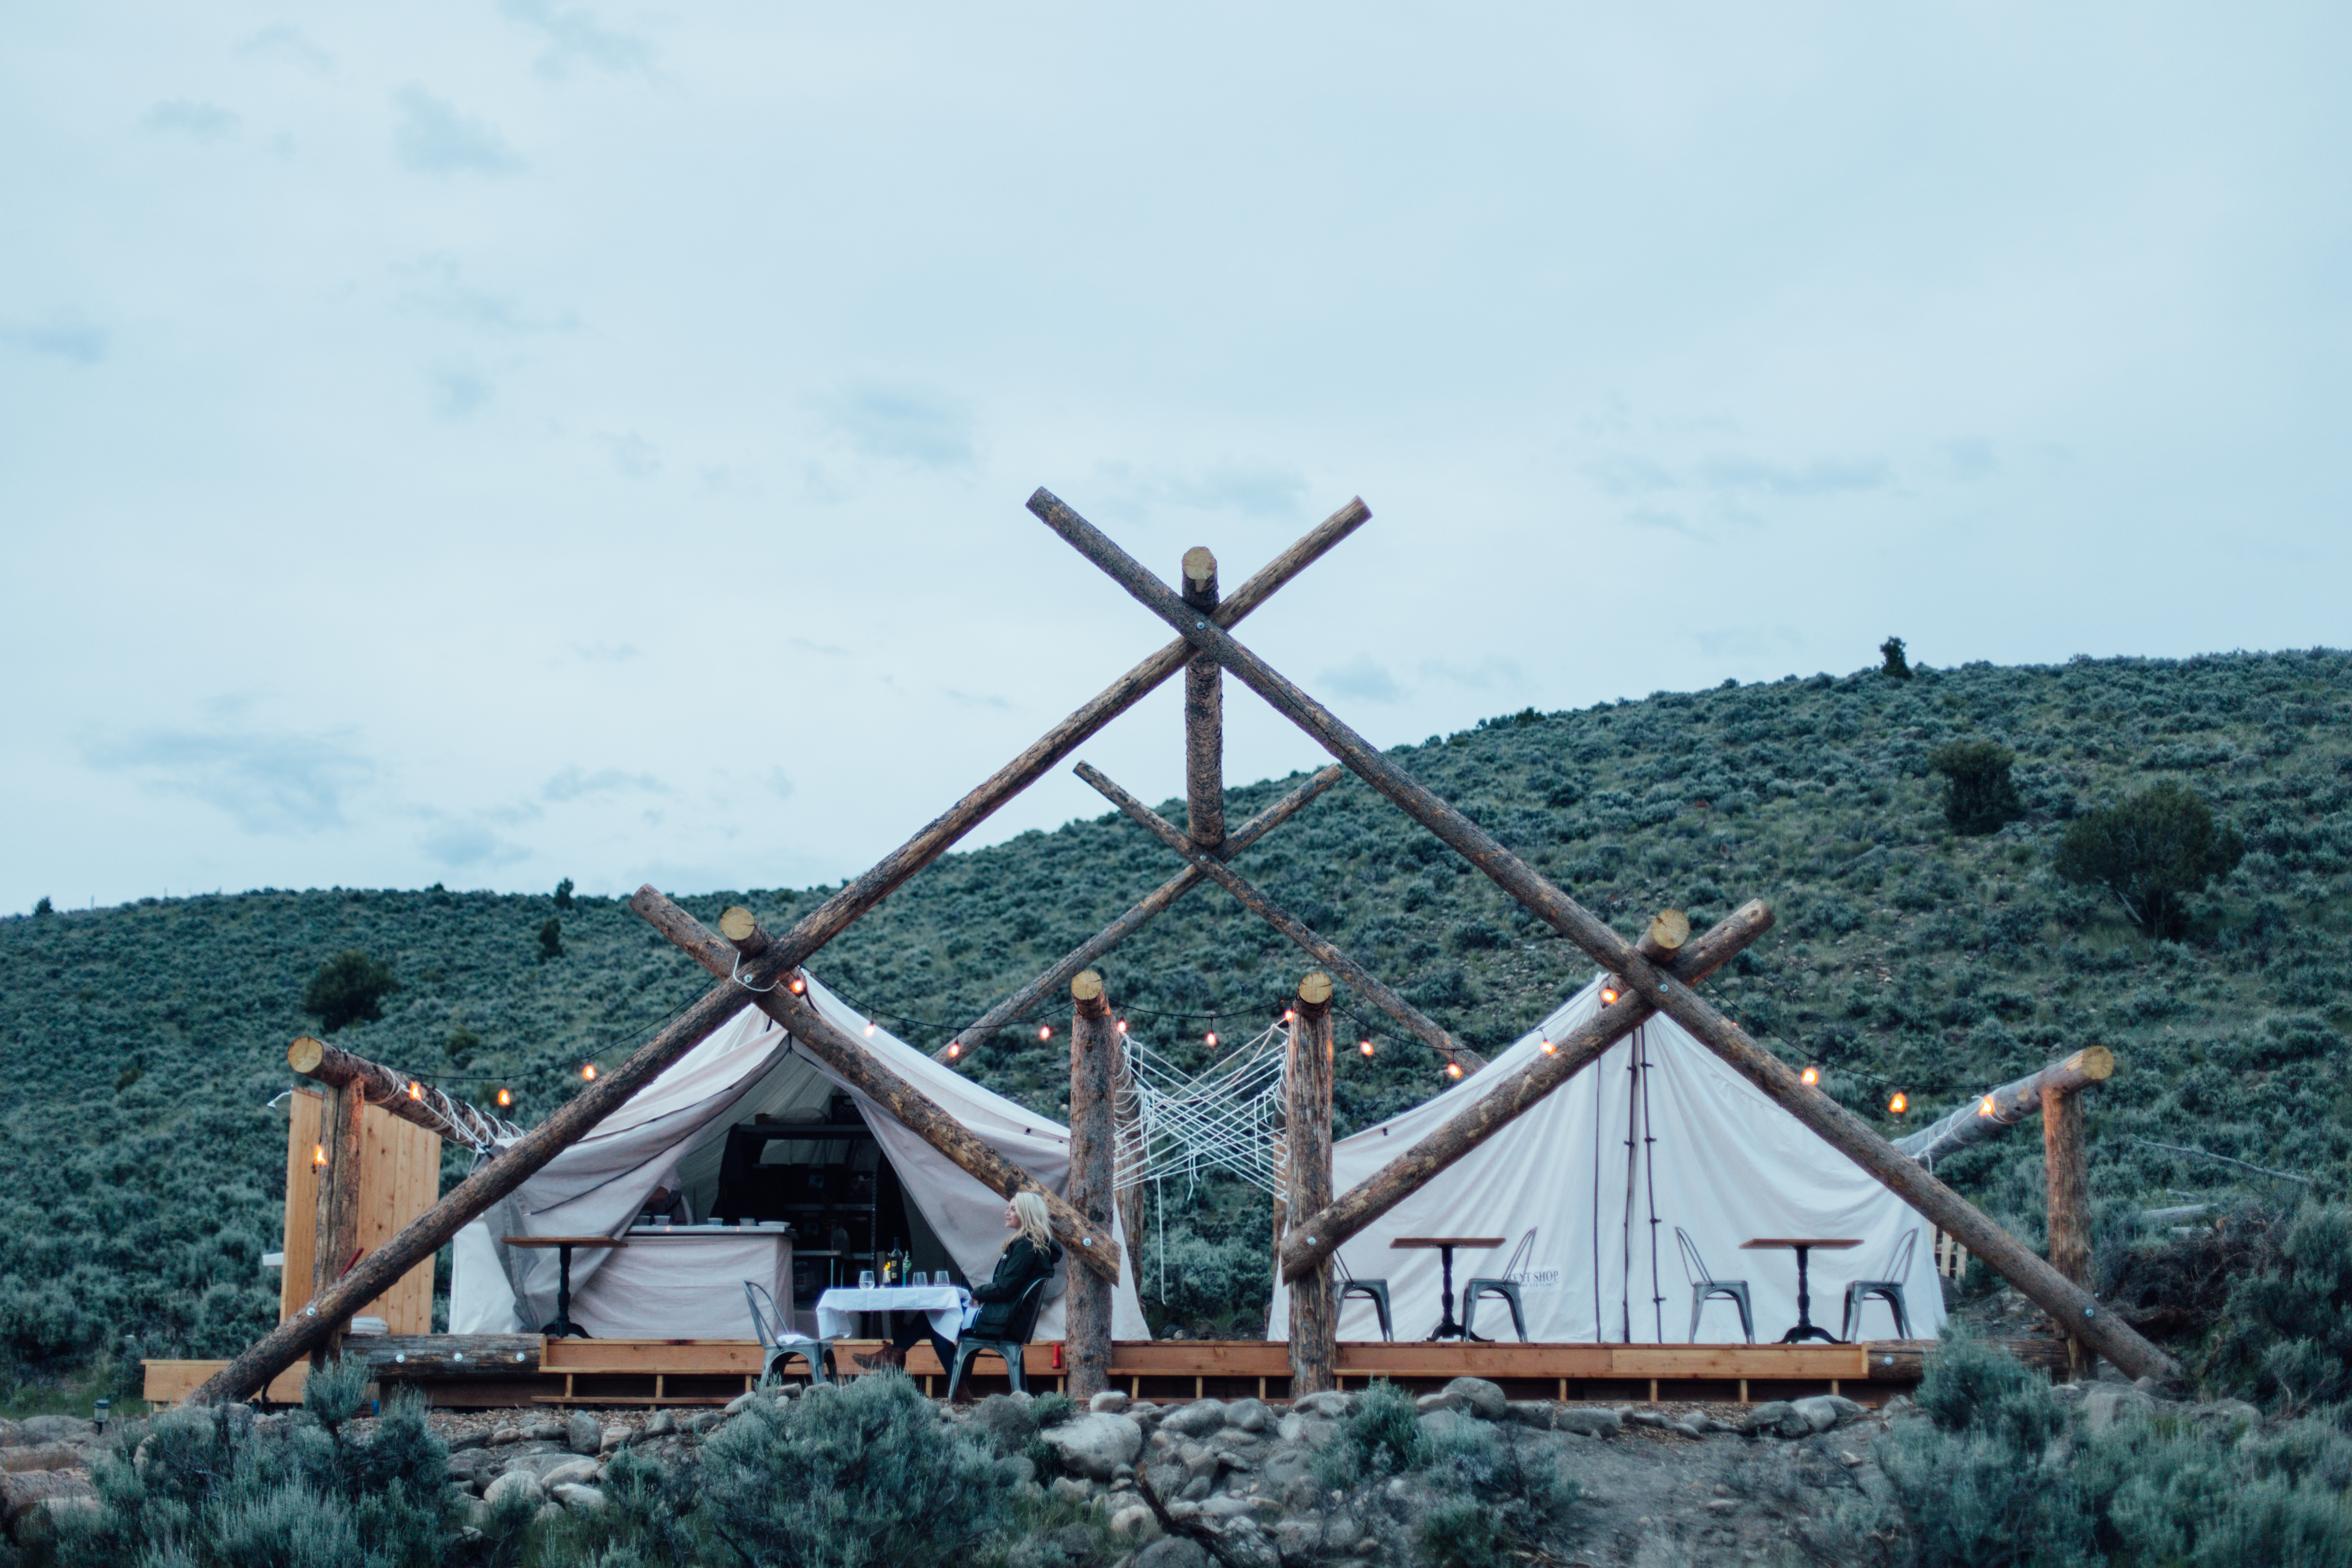 A luxury tent in the US provided by Collective Retreats